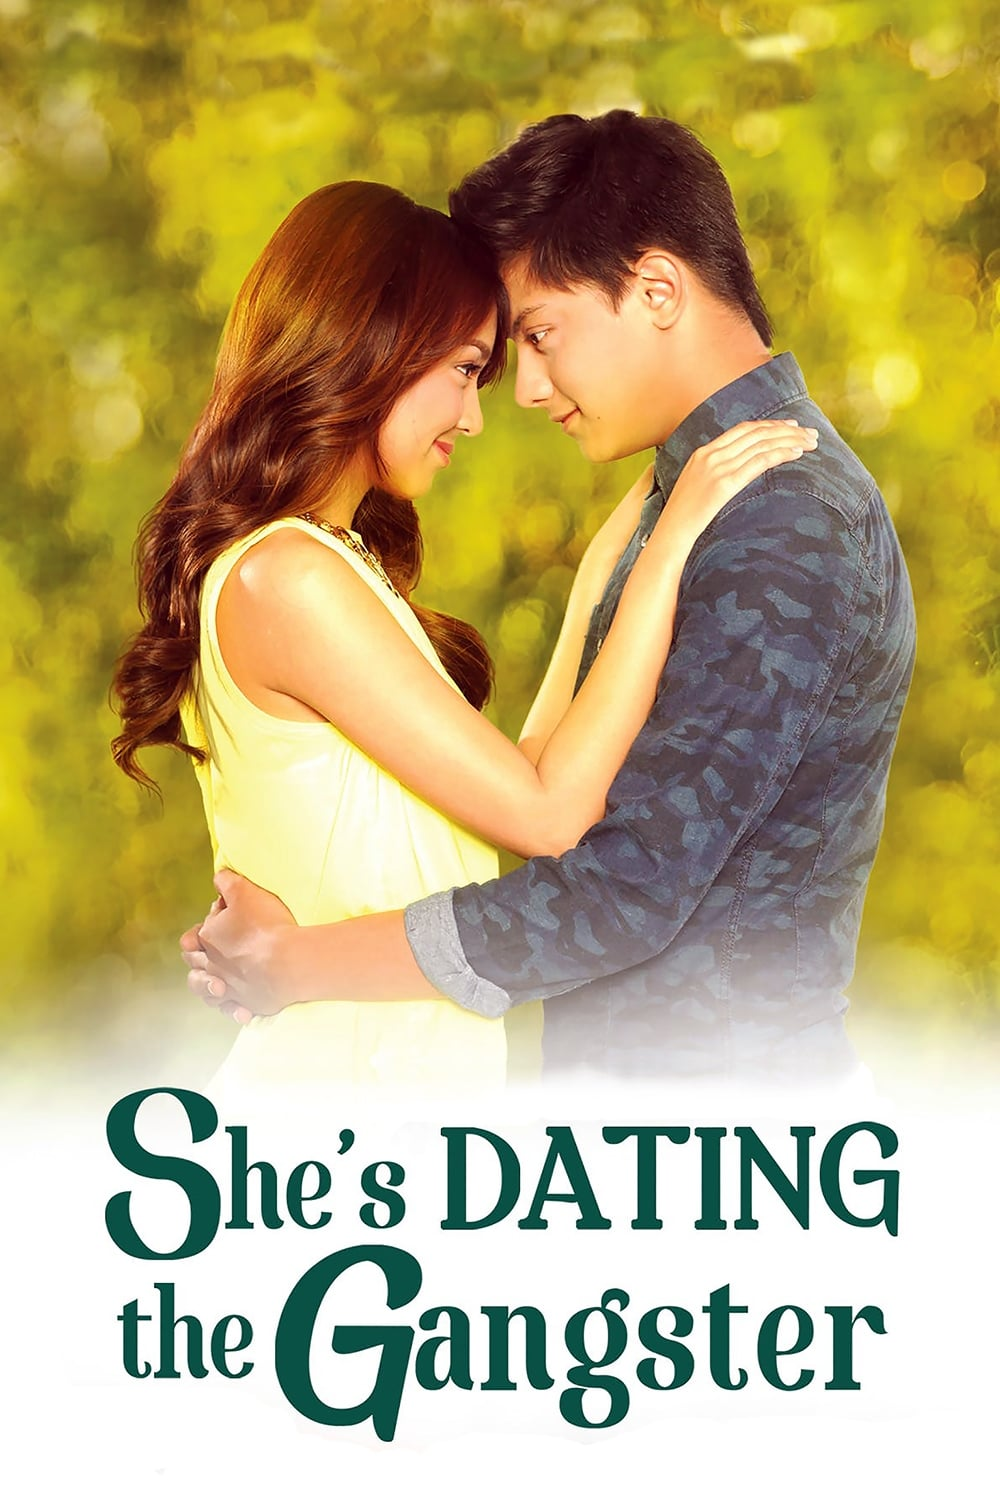 The best: shes dating the gangster movie online free